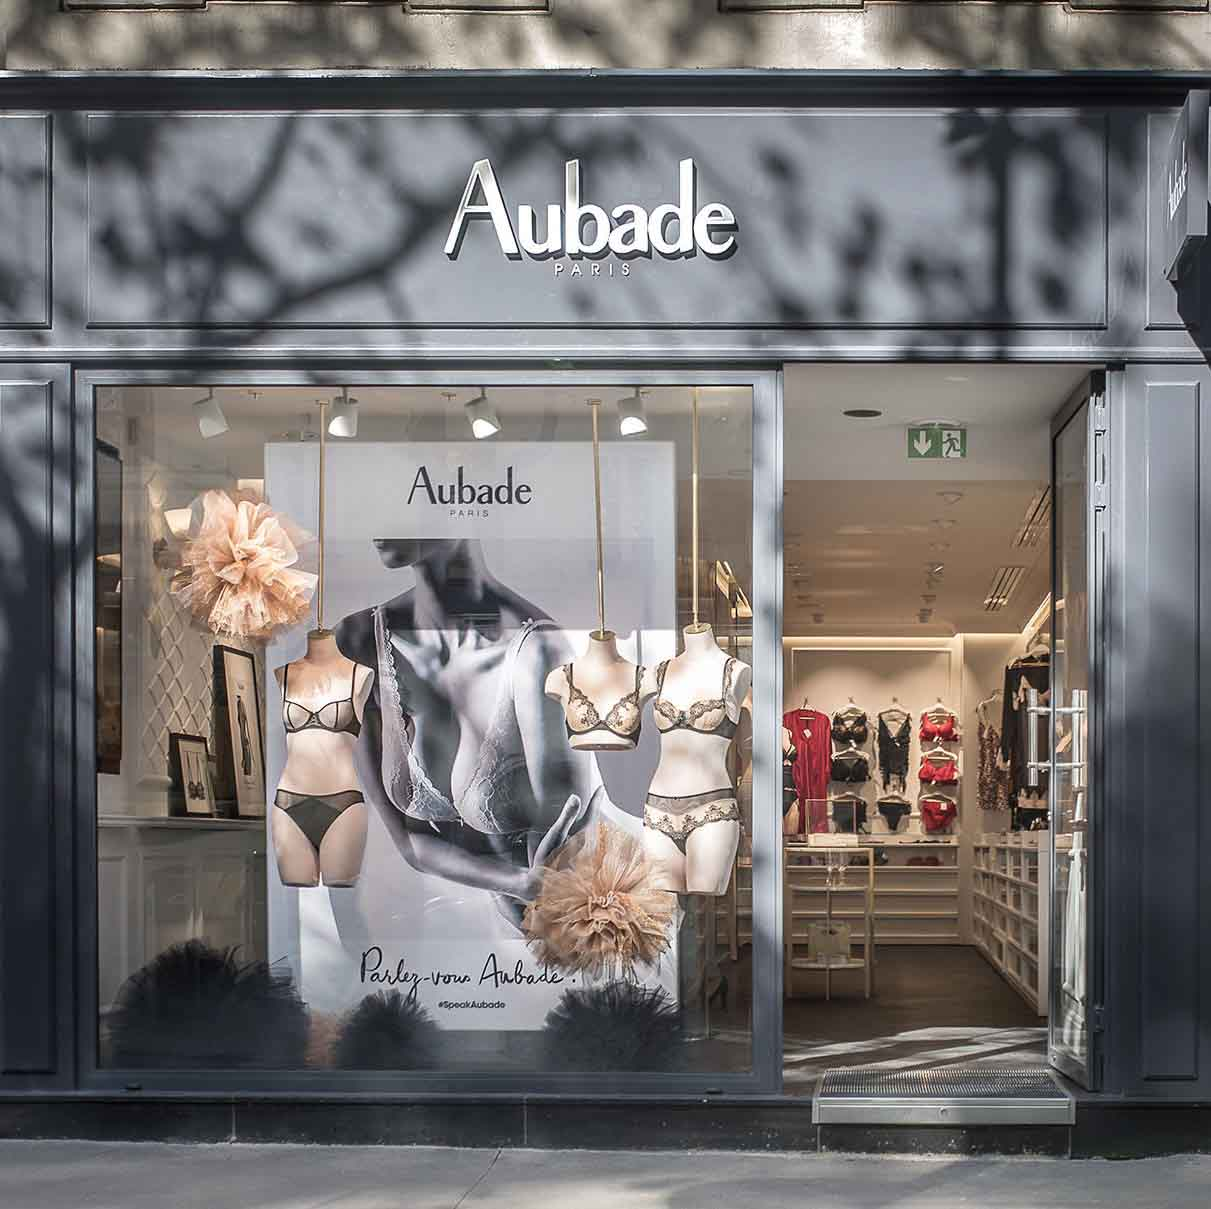 Aubade, Paris